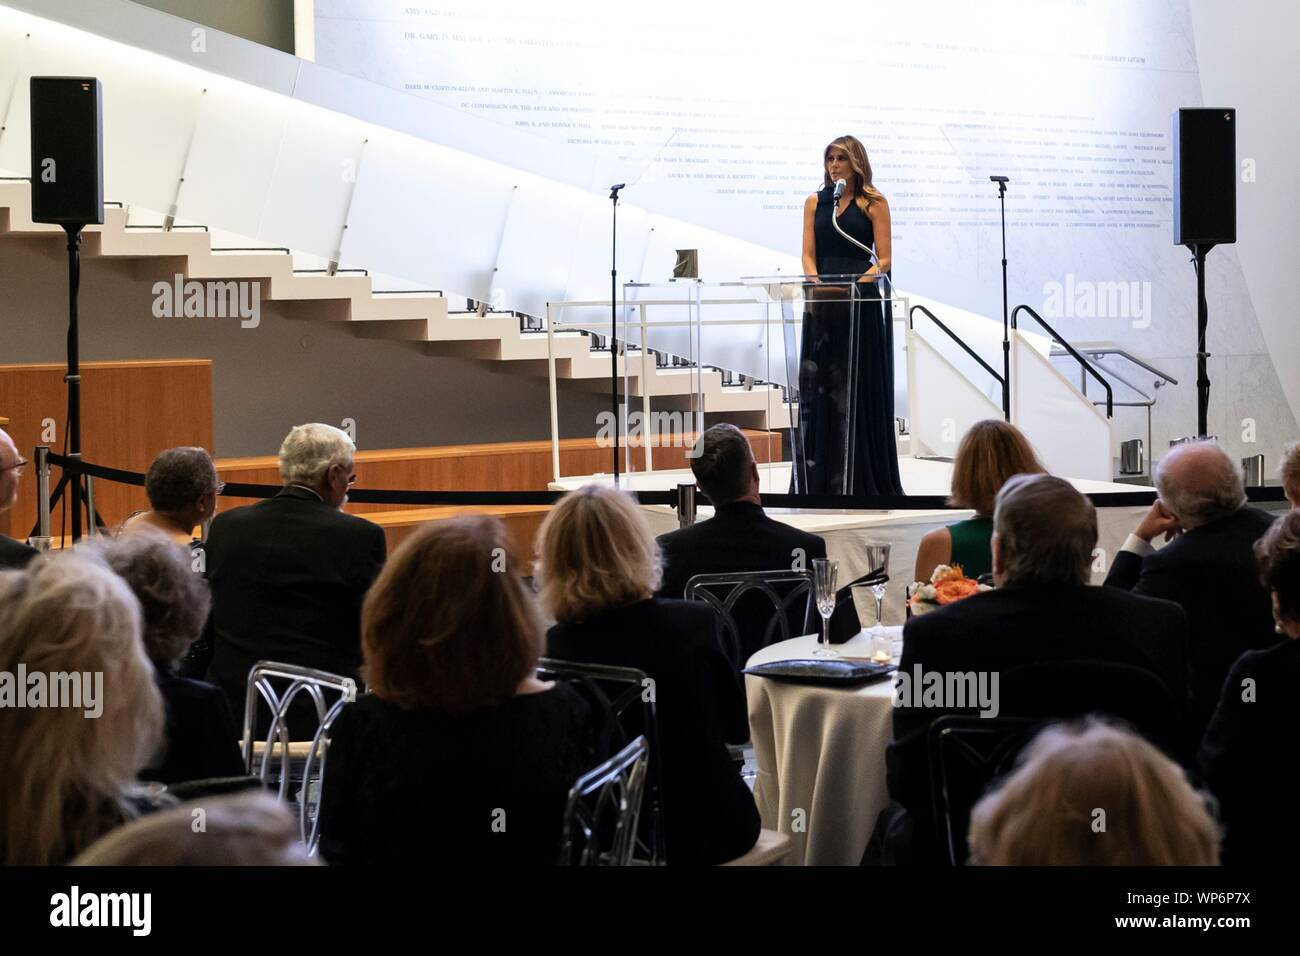 Washington, DC, USA. 05 September, 2019. U.S. First Lady Melania Trump delivers remarks during a dedication ceremony for the REACH Donor Wall at the John F. Kennedy Center for the Performing Arts September 5, 2019 in Washington, D.C. Stock Photo